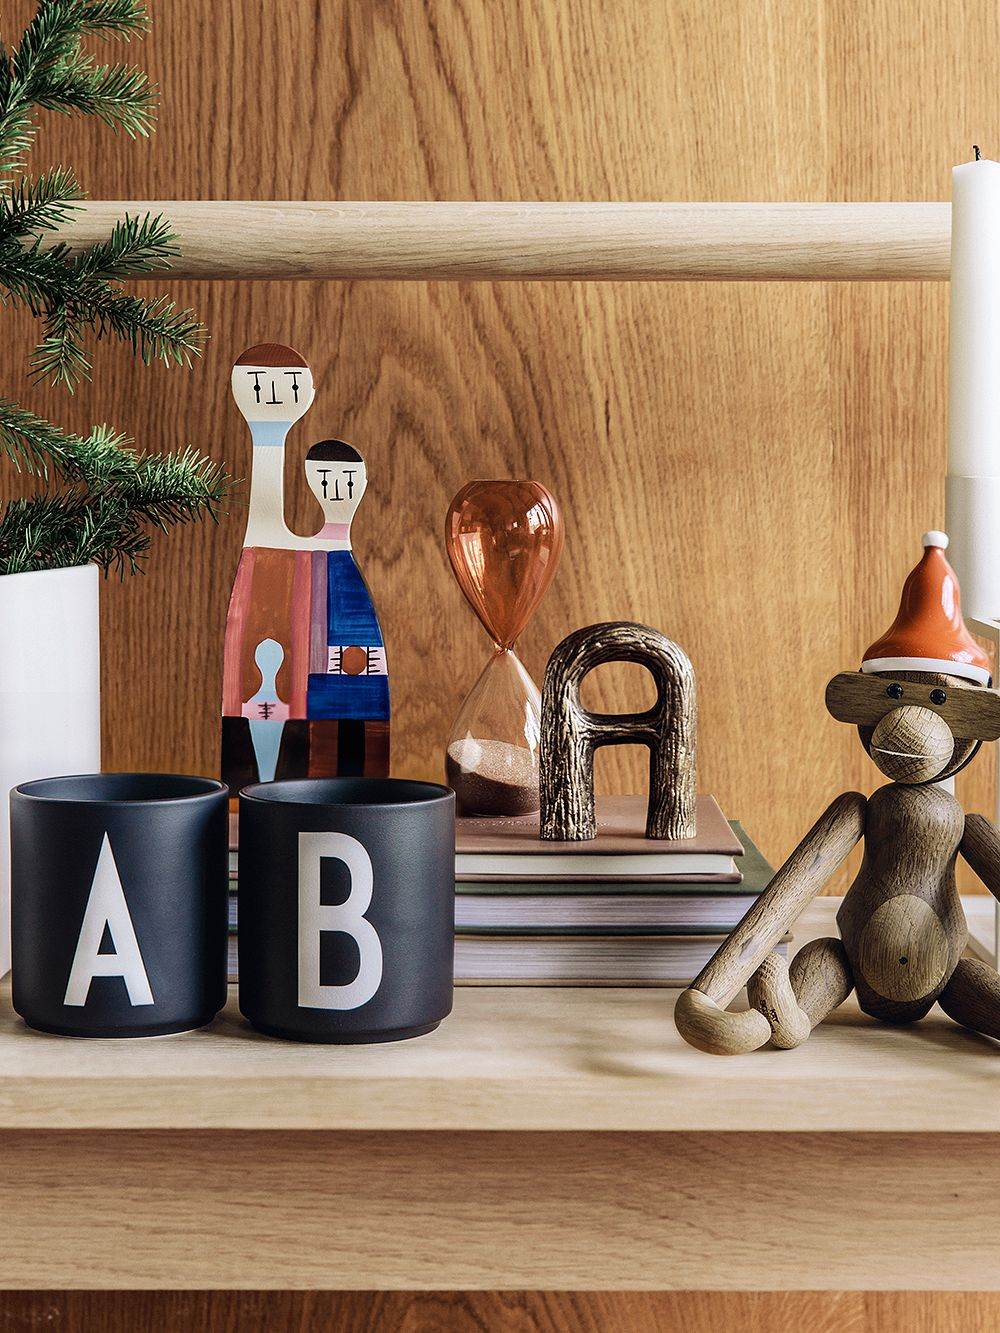 Design Letters' black Arne Jacobsen cups